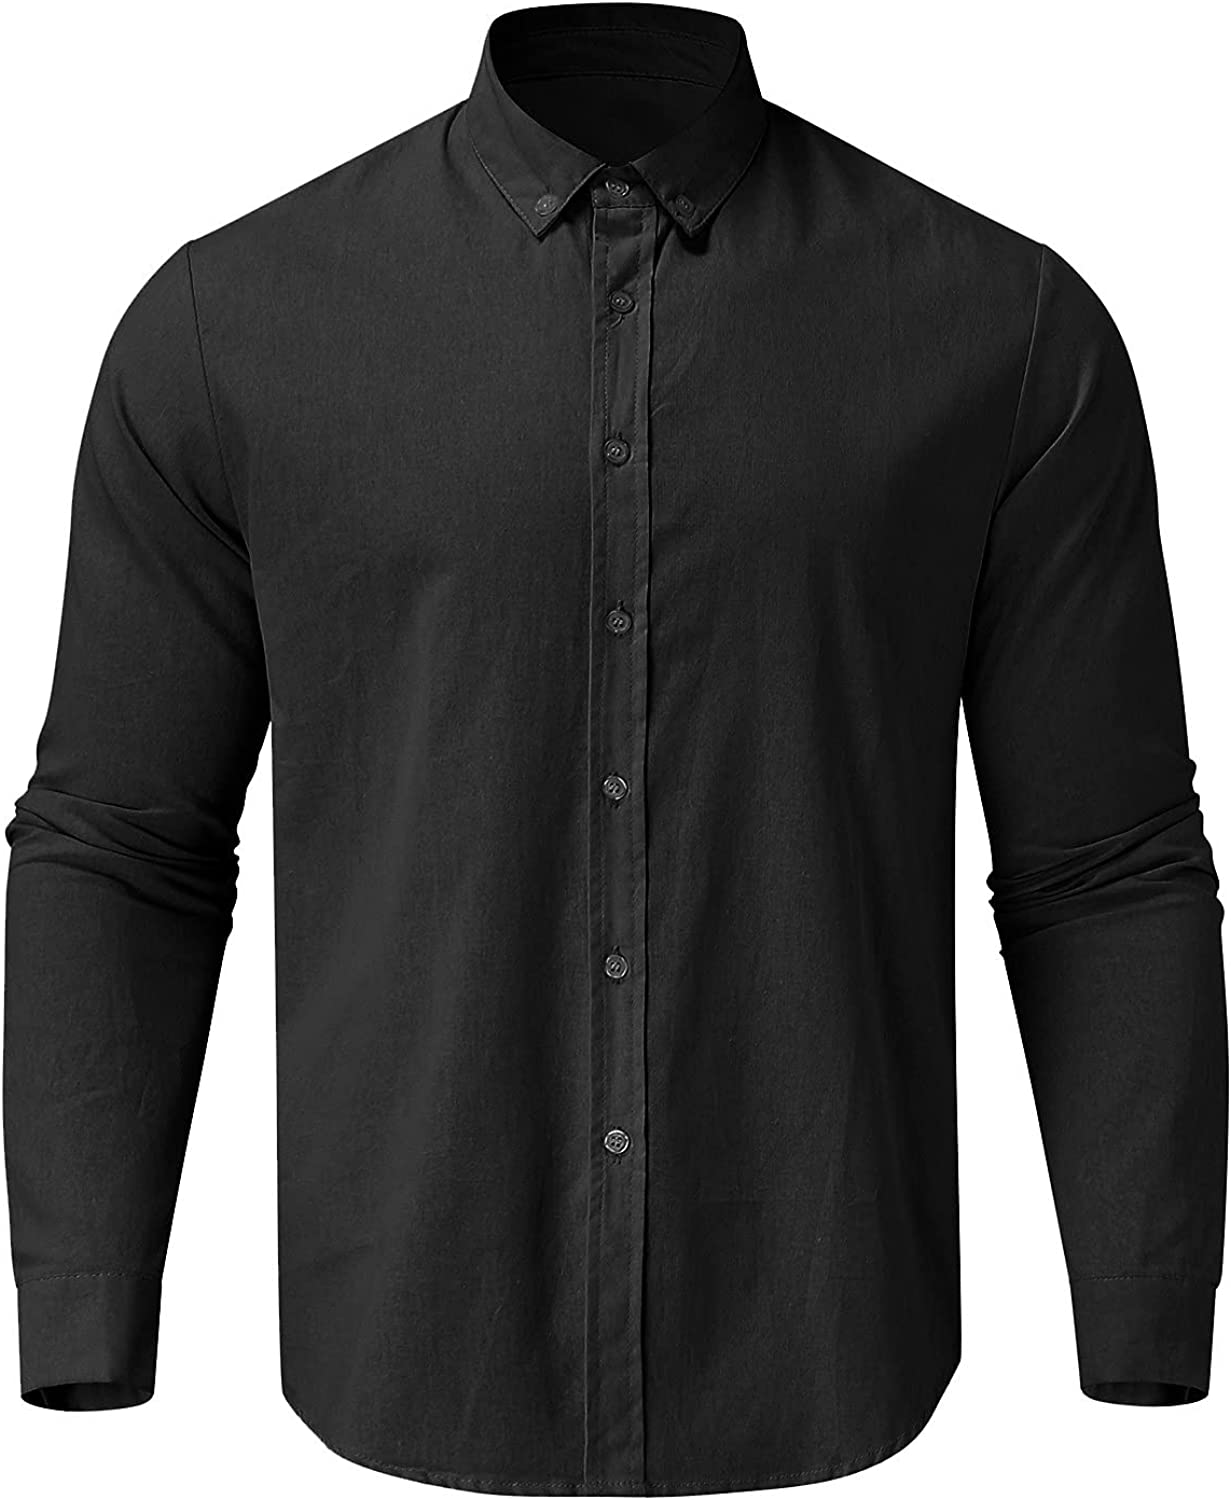 Sharemen Men's Solid Color Casual Button Down Long Sleeve Business Dress Shirt Turn-Down Collar Blouse Tops (Black, L3)